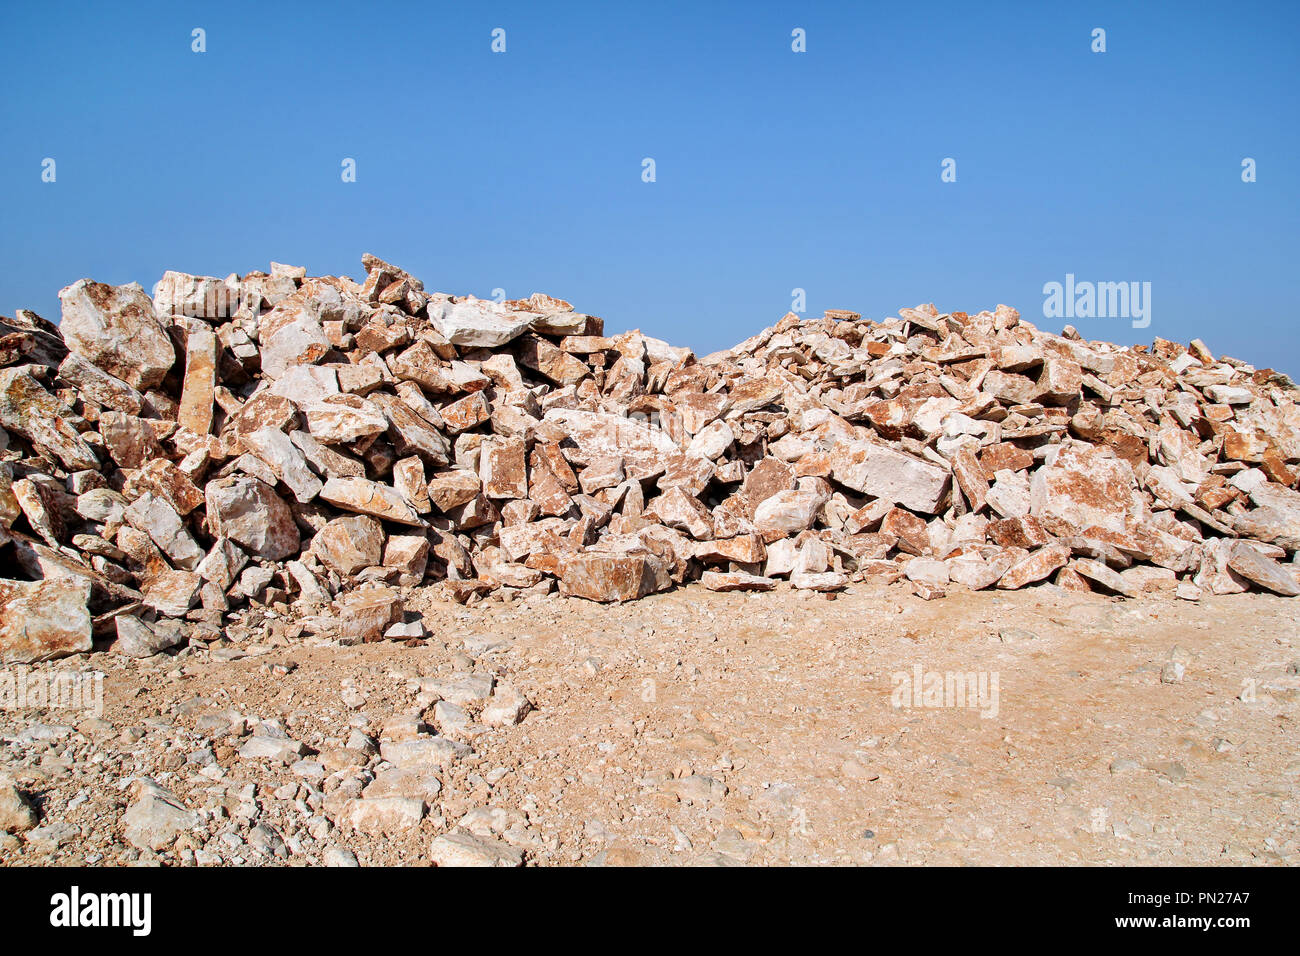 Brown Granite. Big pile of rocks for construction and boulders piled in a heap under a blue sky in summer time. A large pile of limestone in quarry. - Stock Image